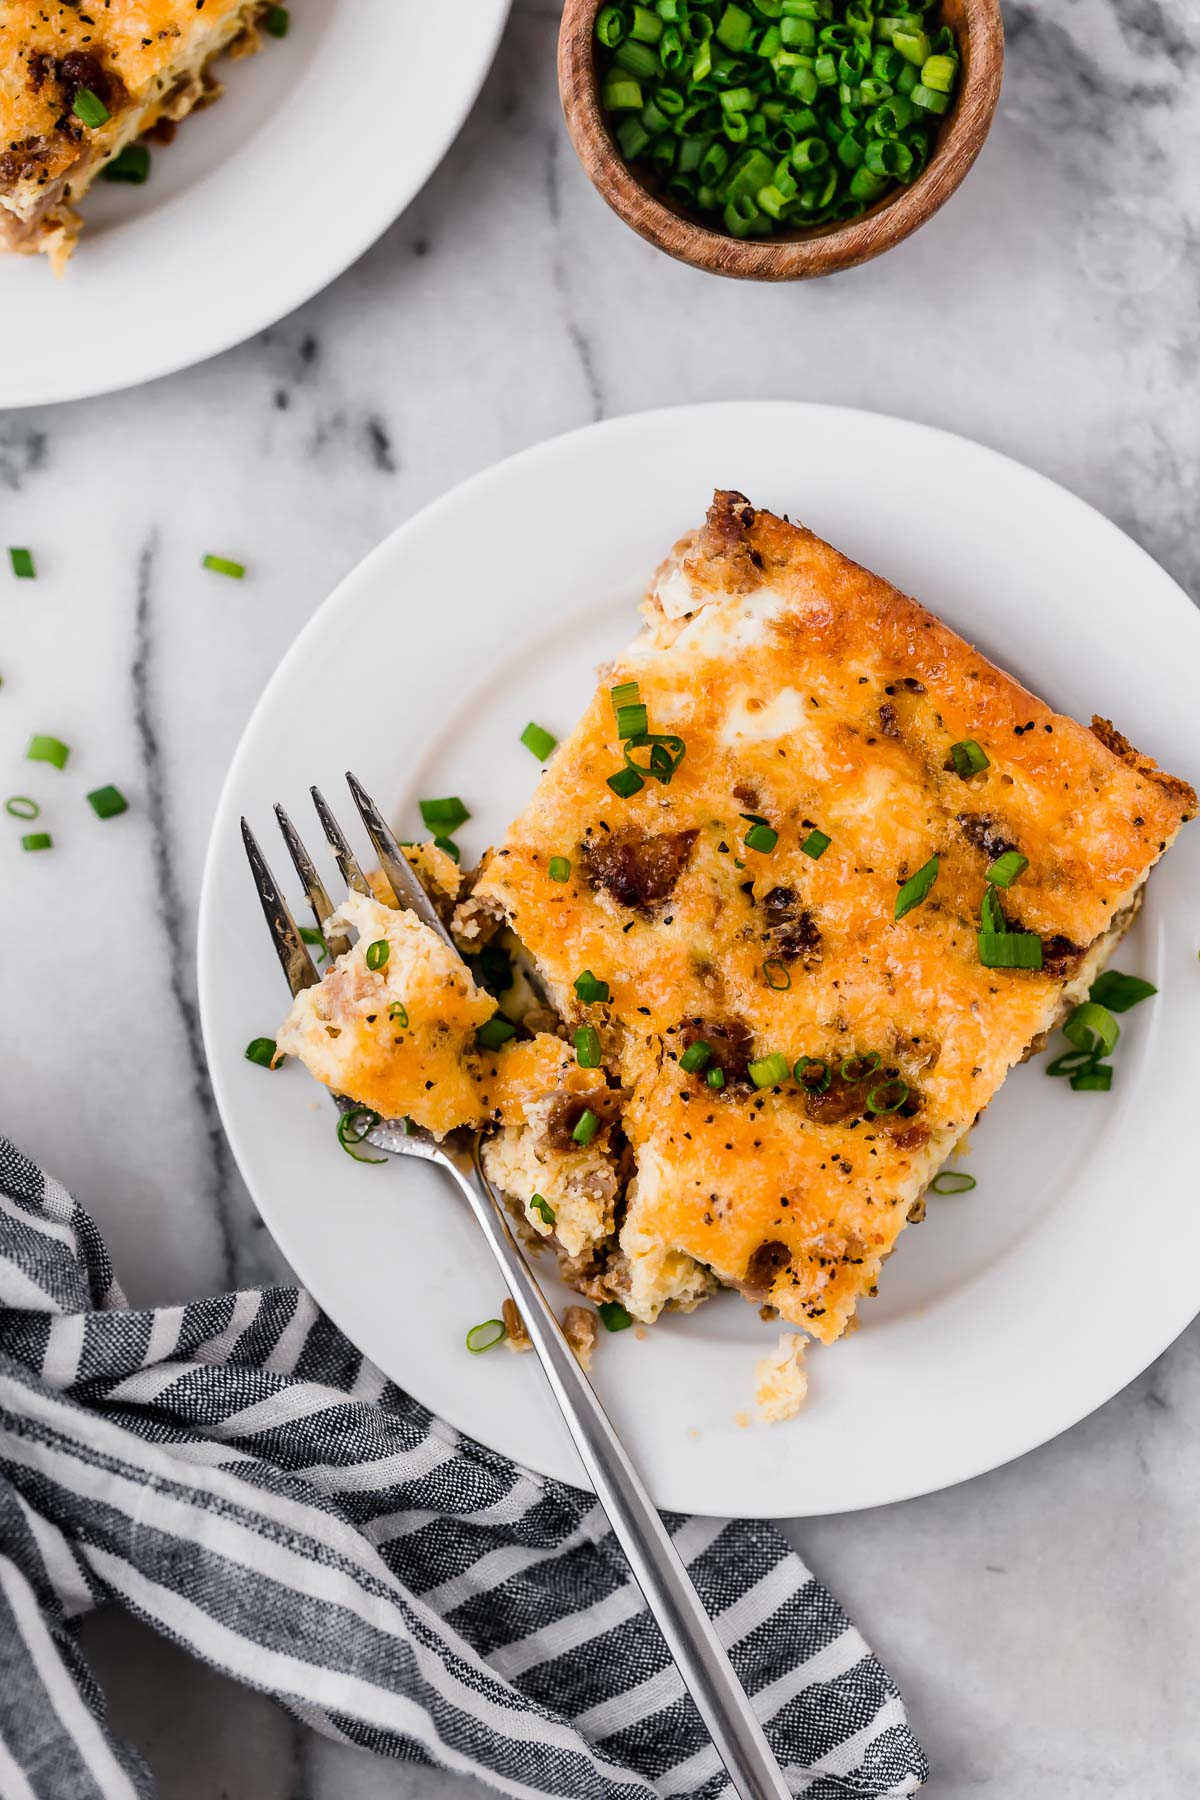 Baked Low Carb Sausage Breakfast Casserole on a plate eaten with a fork